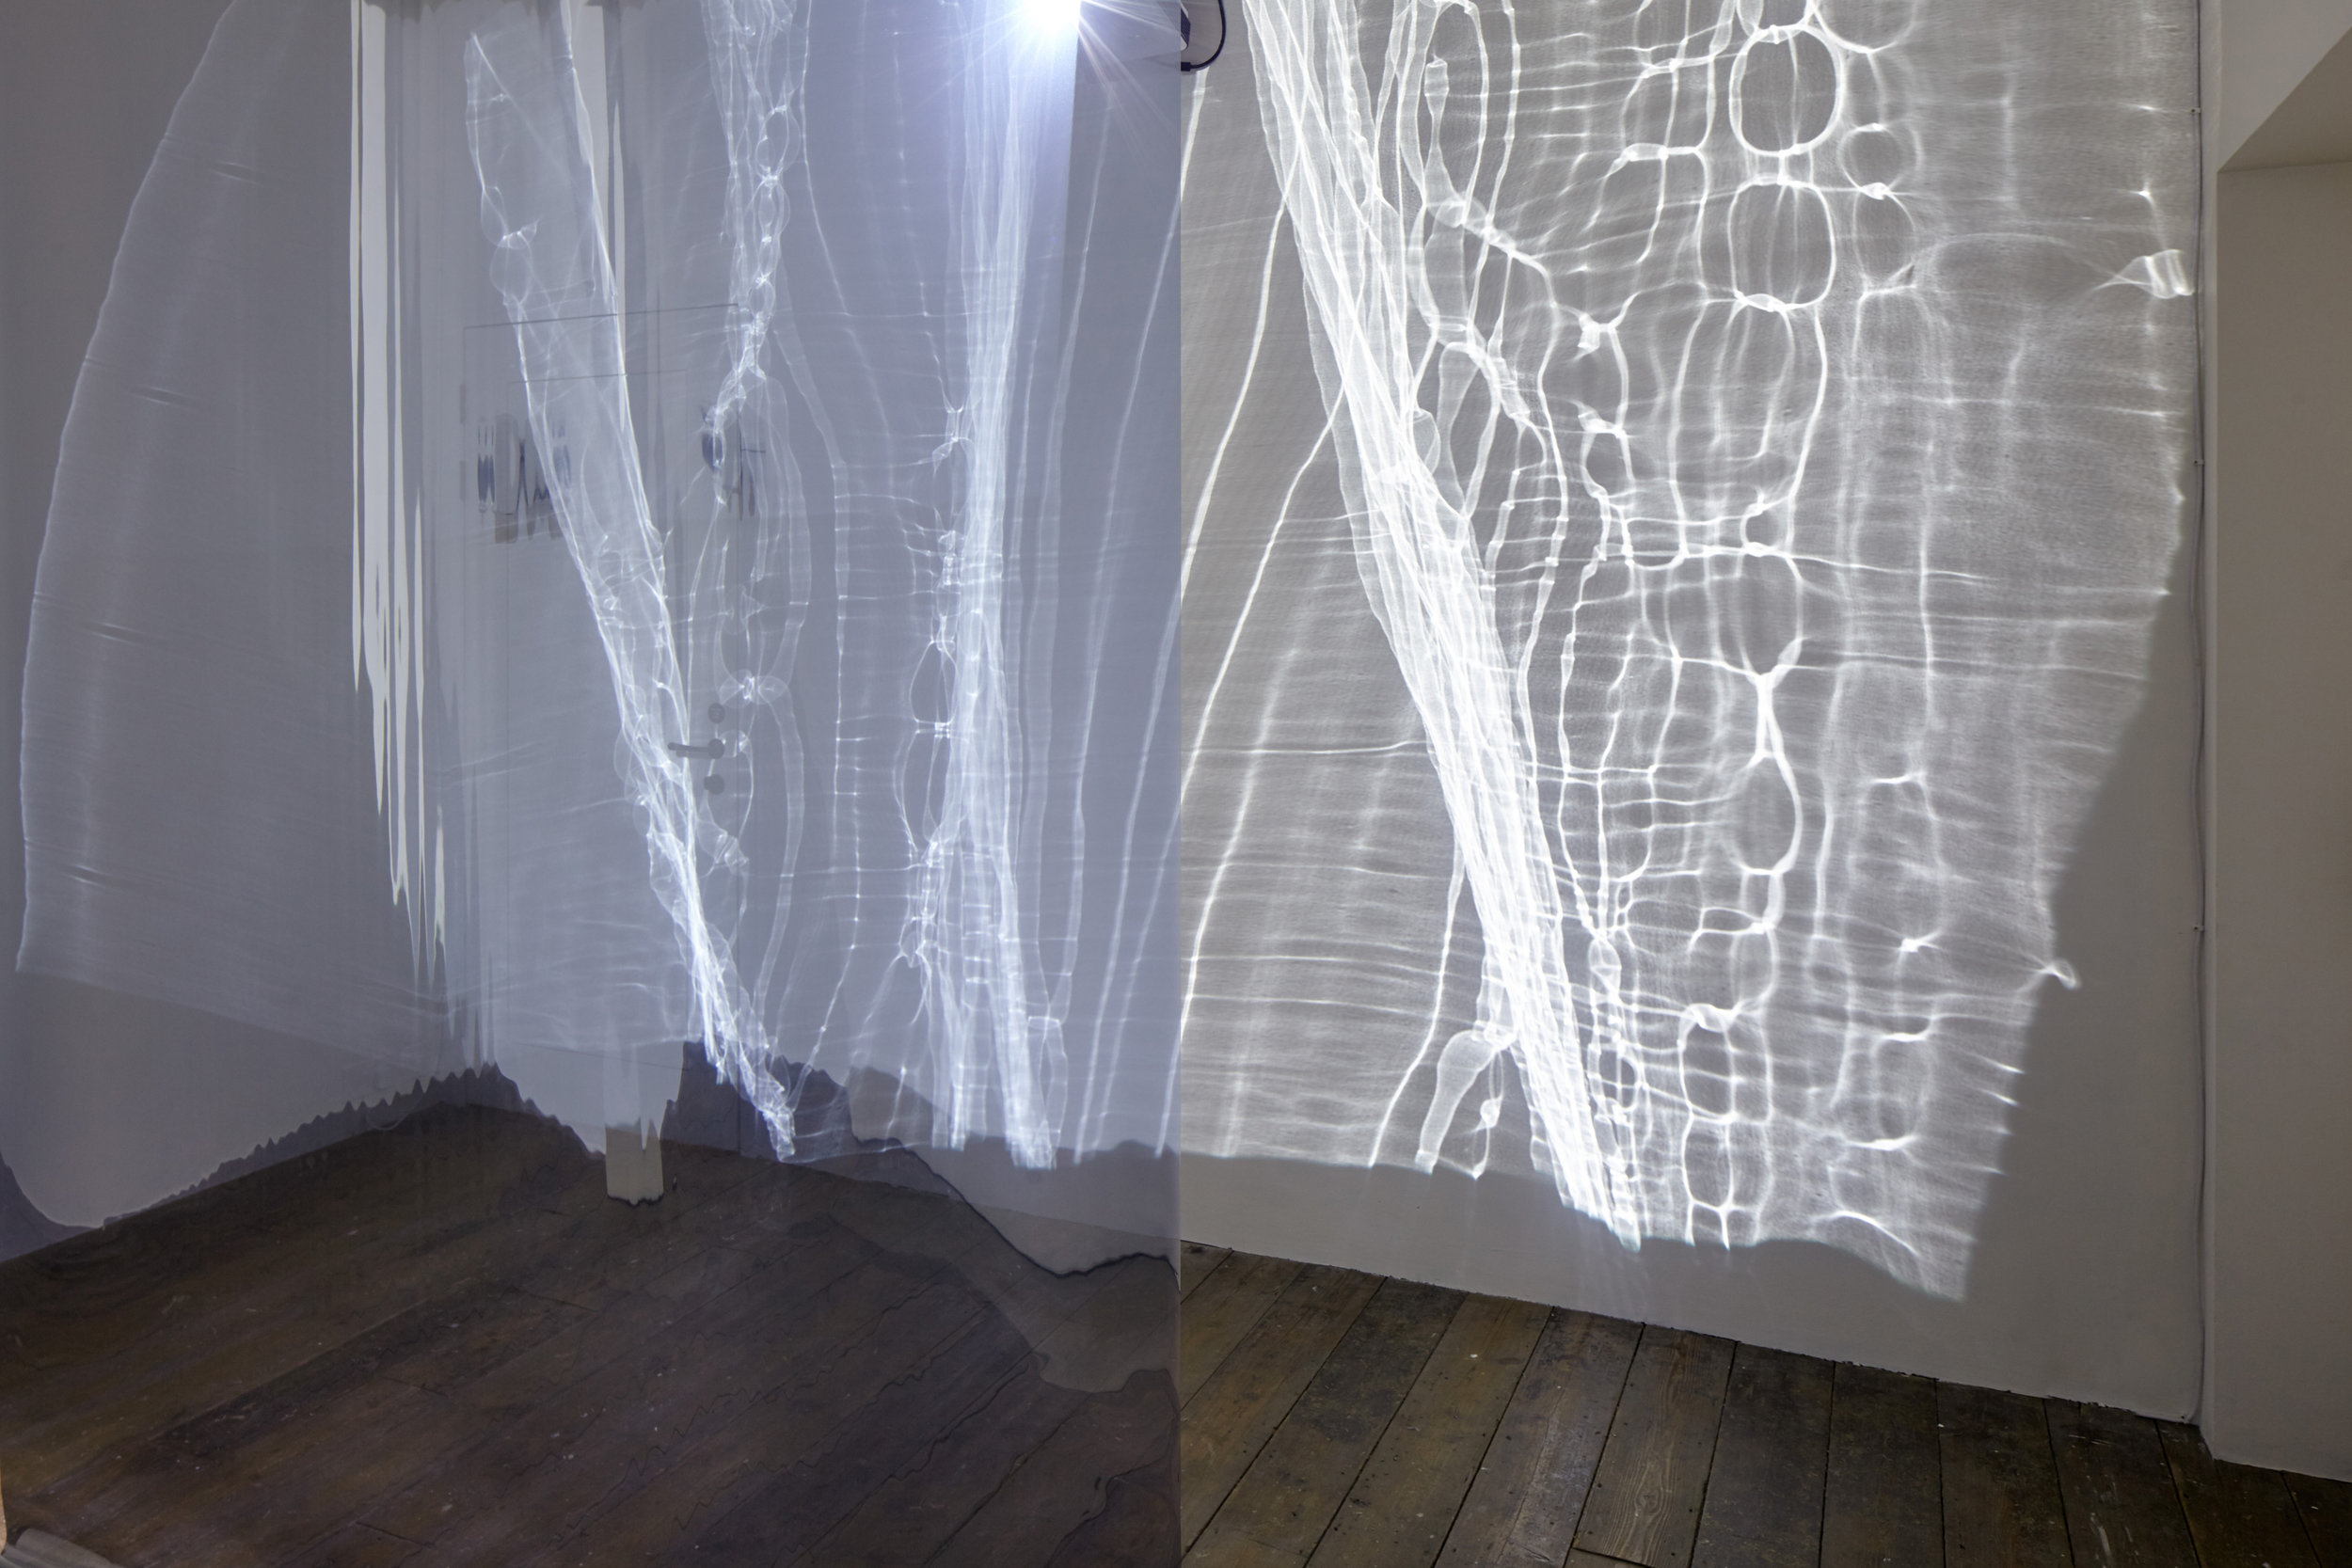 Your Double My Double Our Ghost - Exploring intimacy, interaction and perception through multi-sensory projection, optical sheeting, reflection, lighting, and sonic composition.